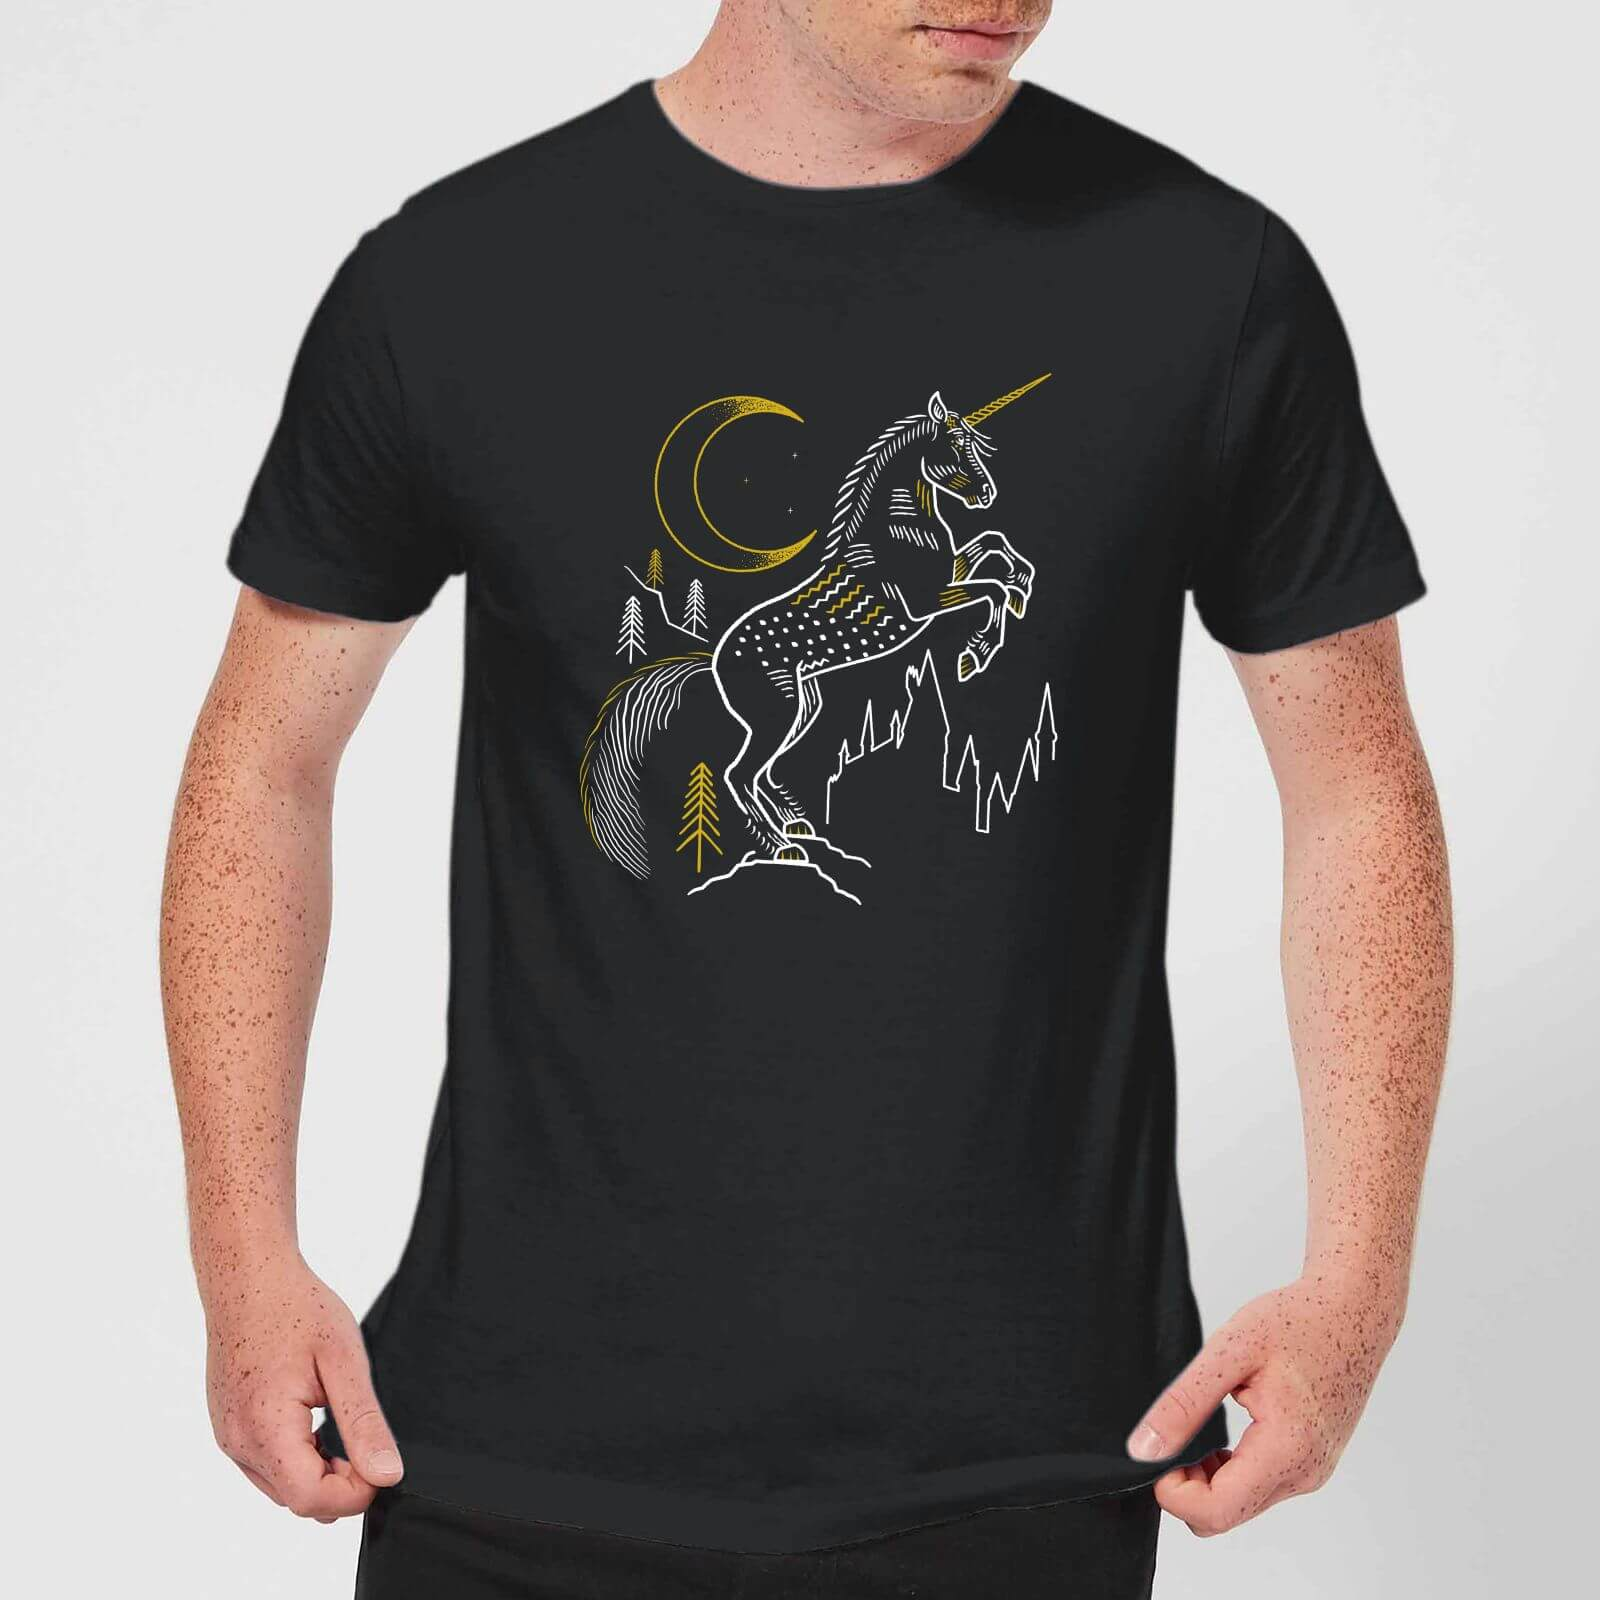 5a735f8a265f0 T-Shirt Homme Dessin au Trait Licorne - Harry Potter - Noir Clothing |  fr.zavvi